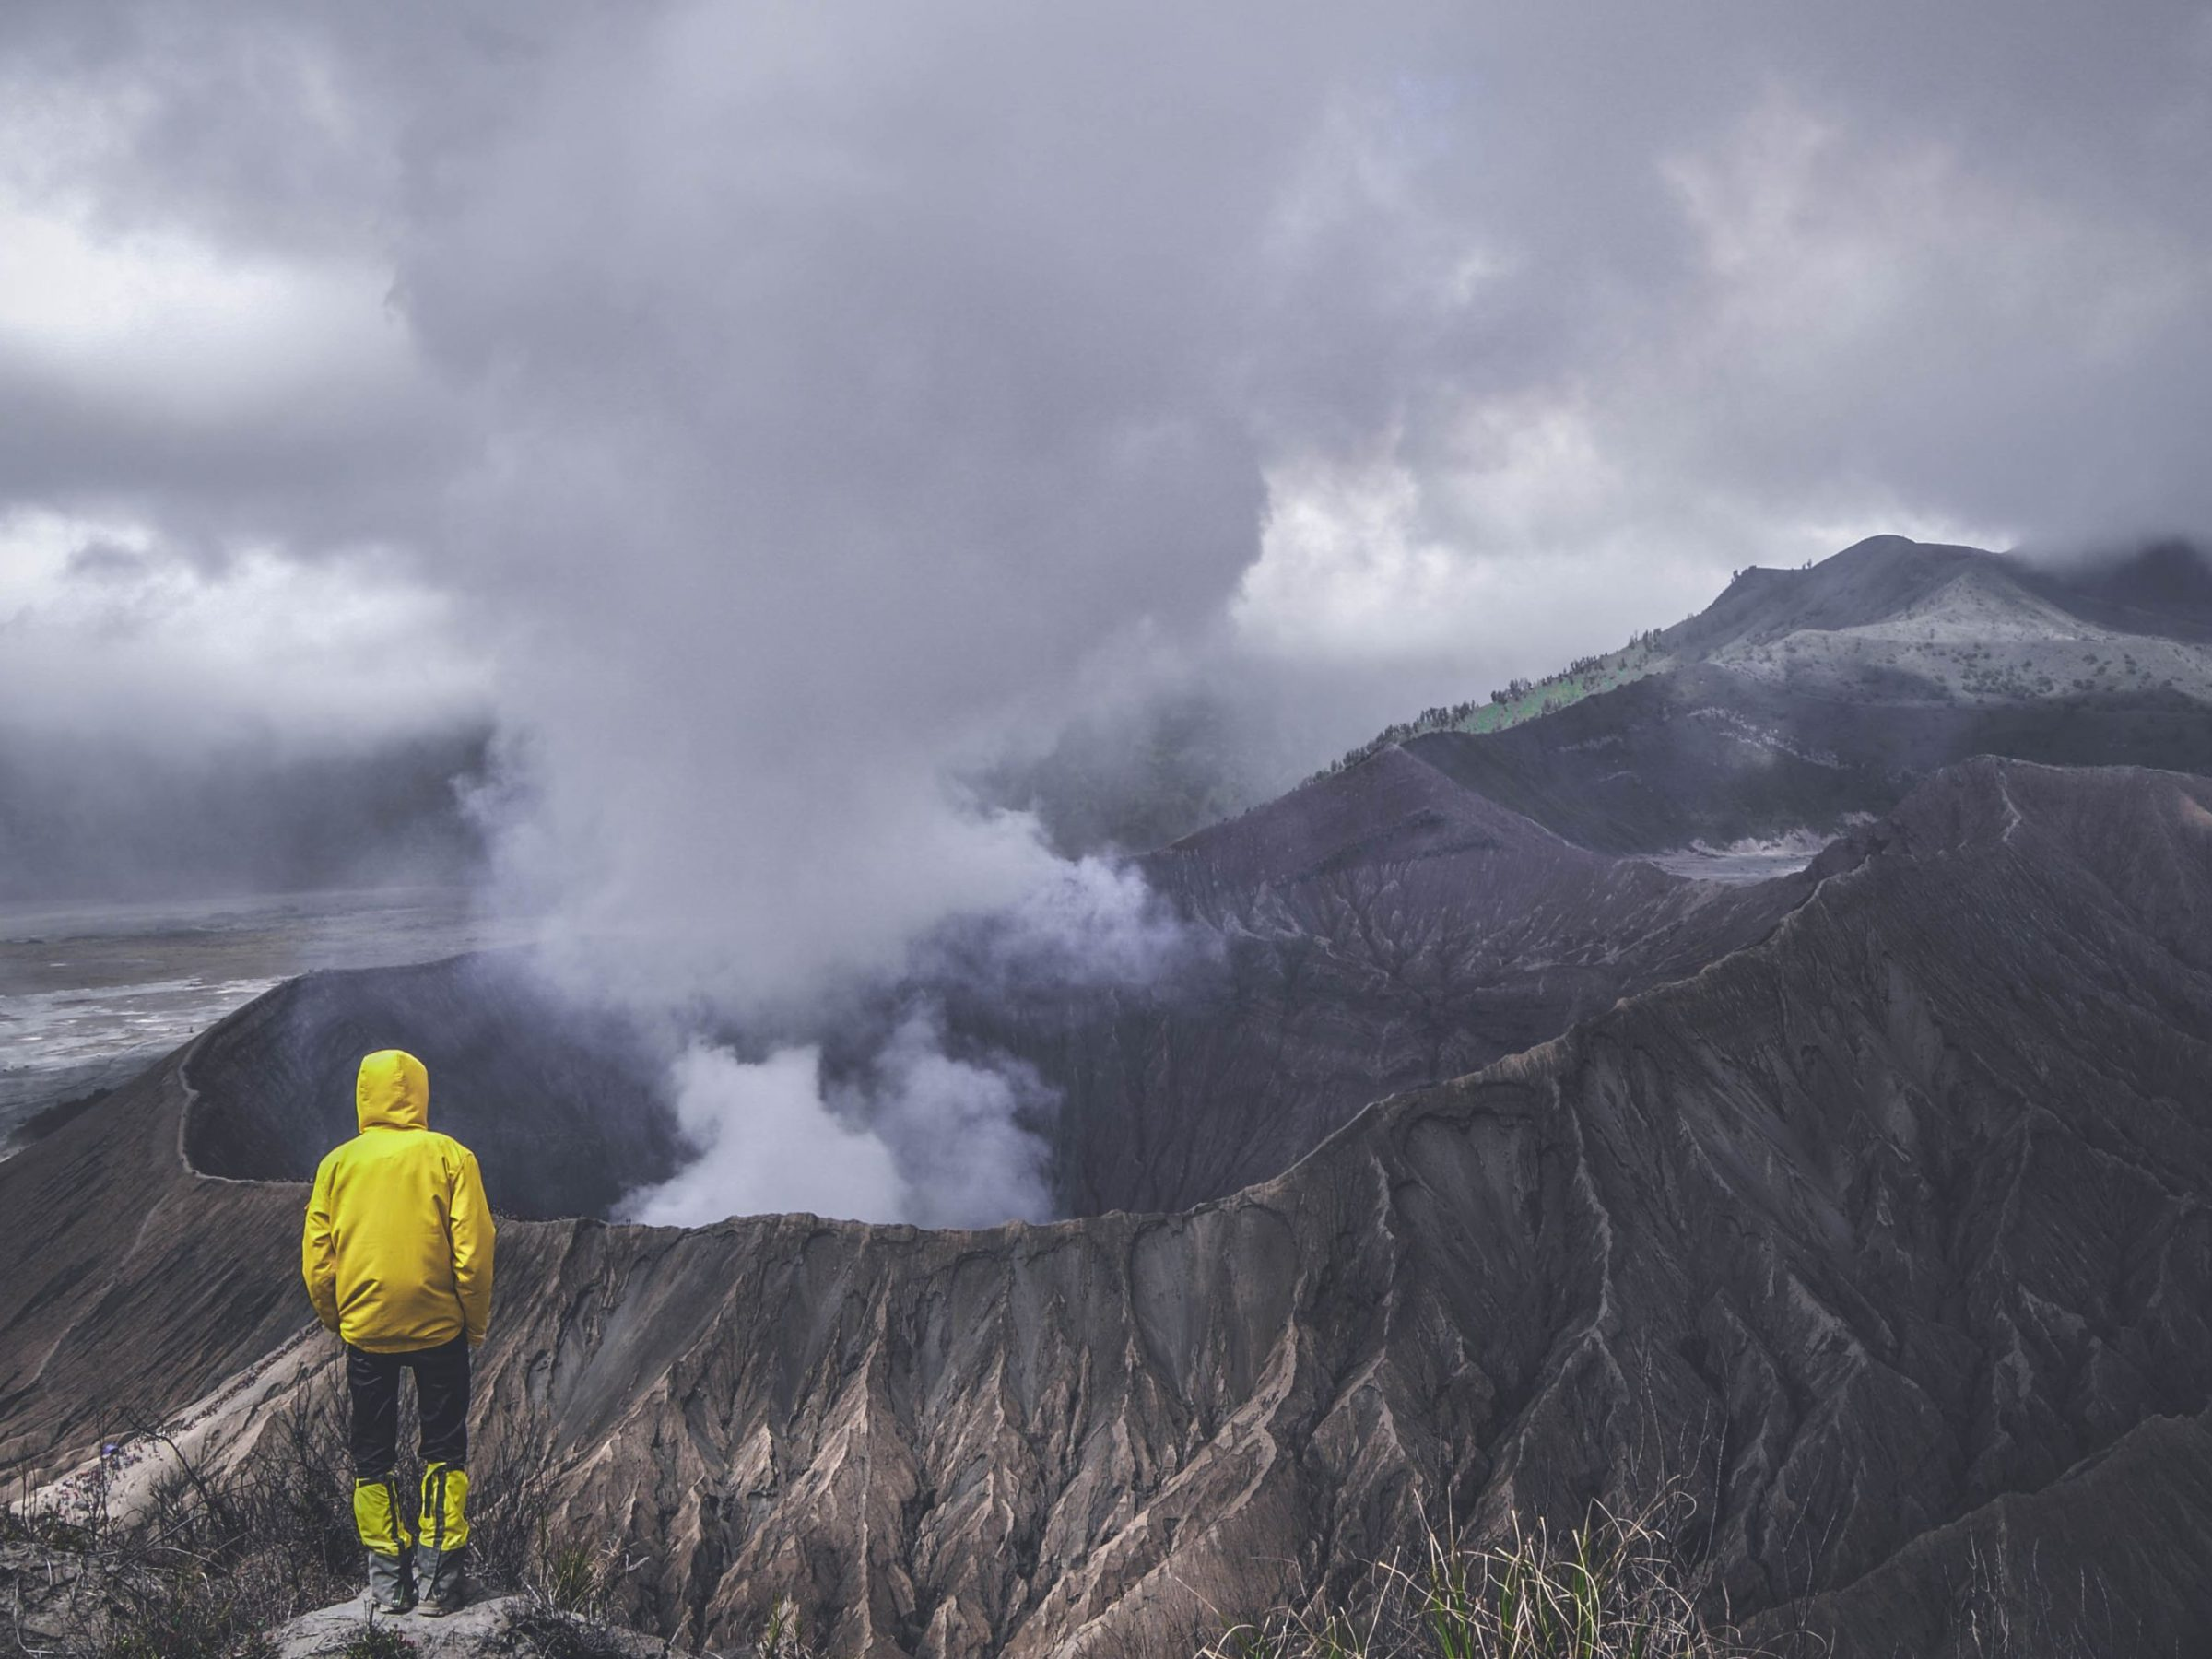 Keeping a safe distance from an active volcano